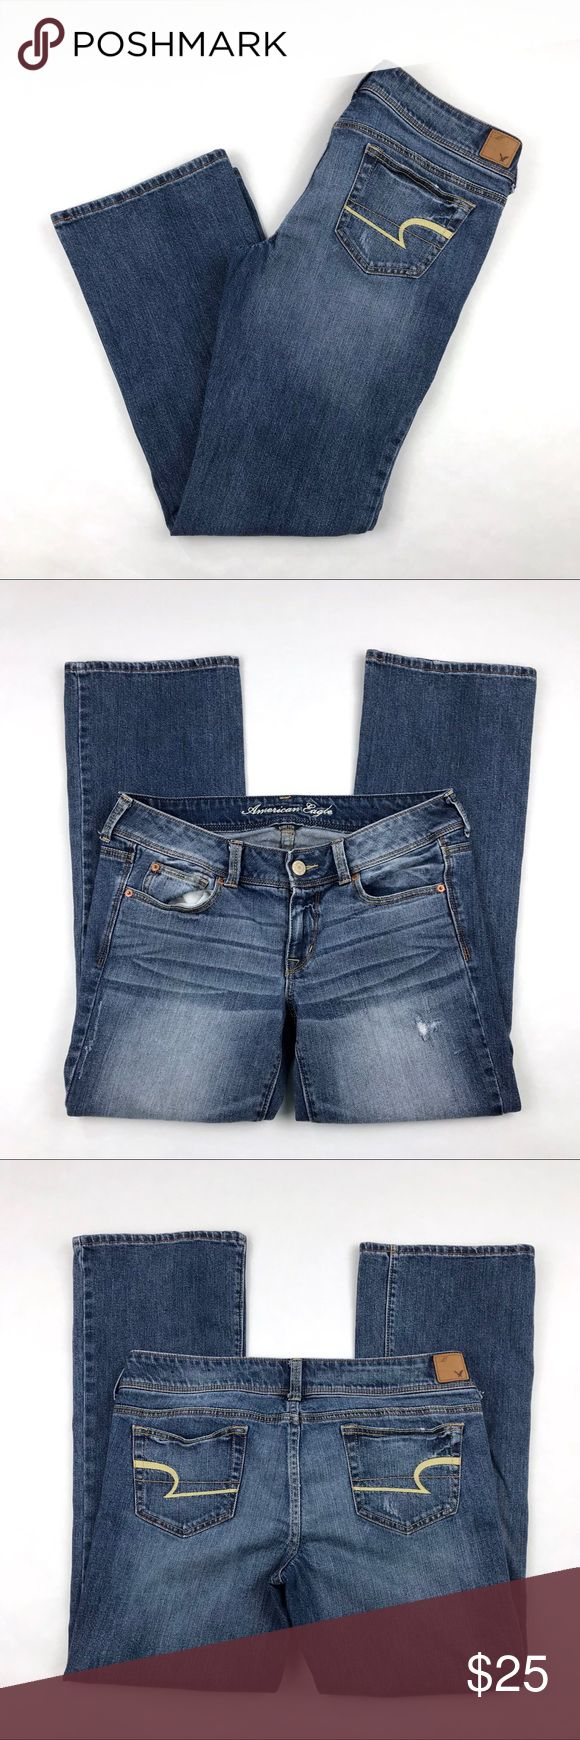 """American Eagle Slim Boot Jeans Size 12 Short American Eagle Slim Boot Jeans  Size 12 Short Distressed Medium Wash Materials: 98% cotton, 2% spandex Pre-owned in excellent condition  Actual measurements taken laying flat: waist- 16.5"""" rise- 8"""" inseam- 29.5"""" leg opening- 8.5""""  Location- E5 American Eagle Outfitters Jeans Boot Cut"""